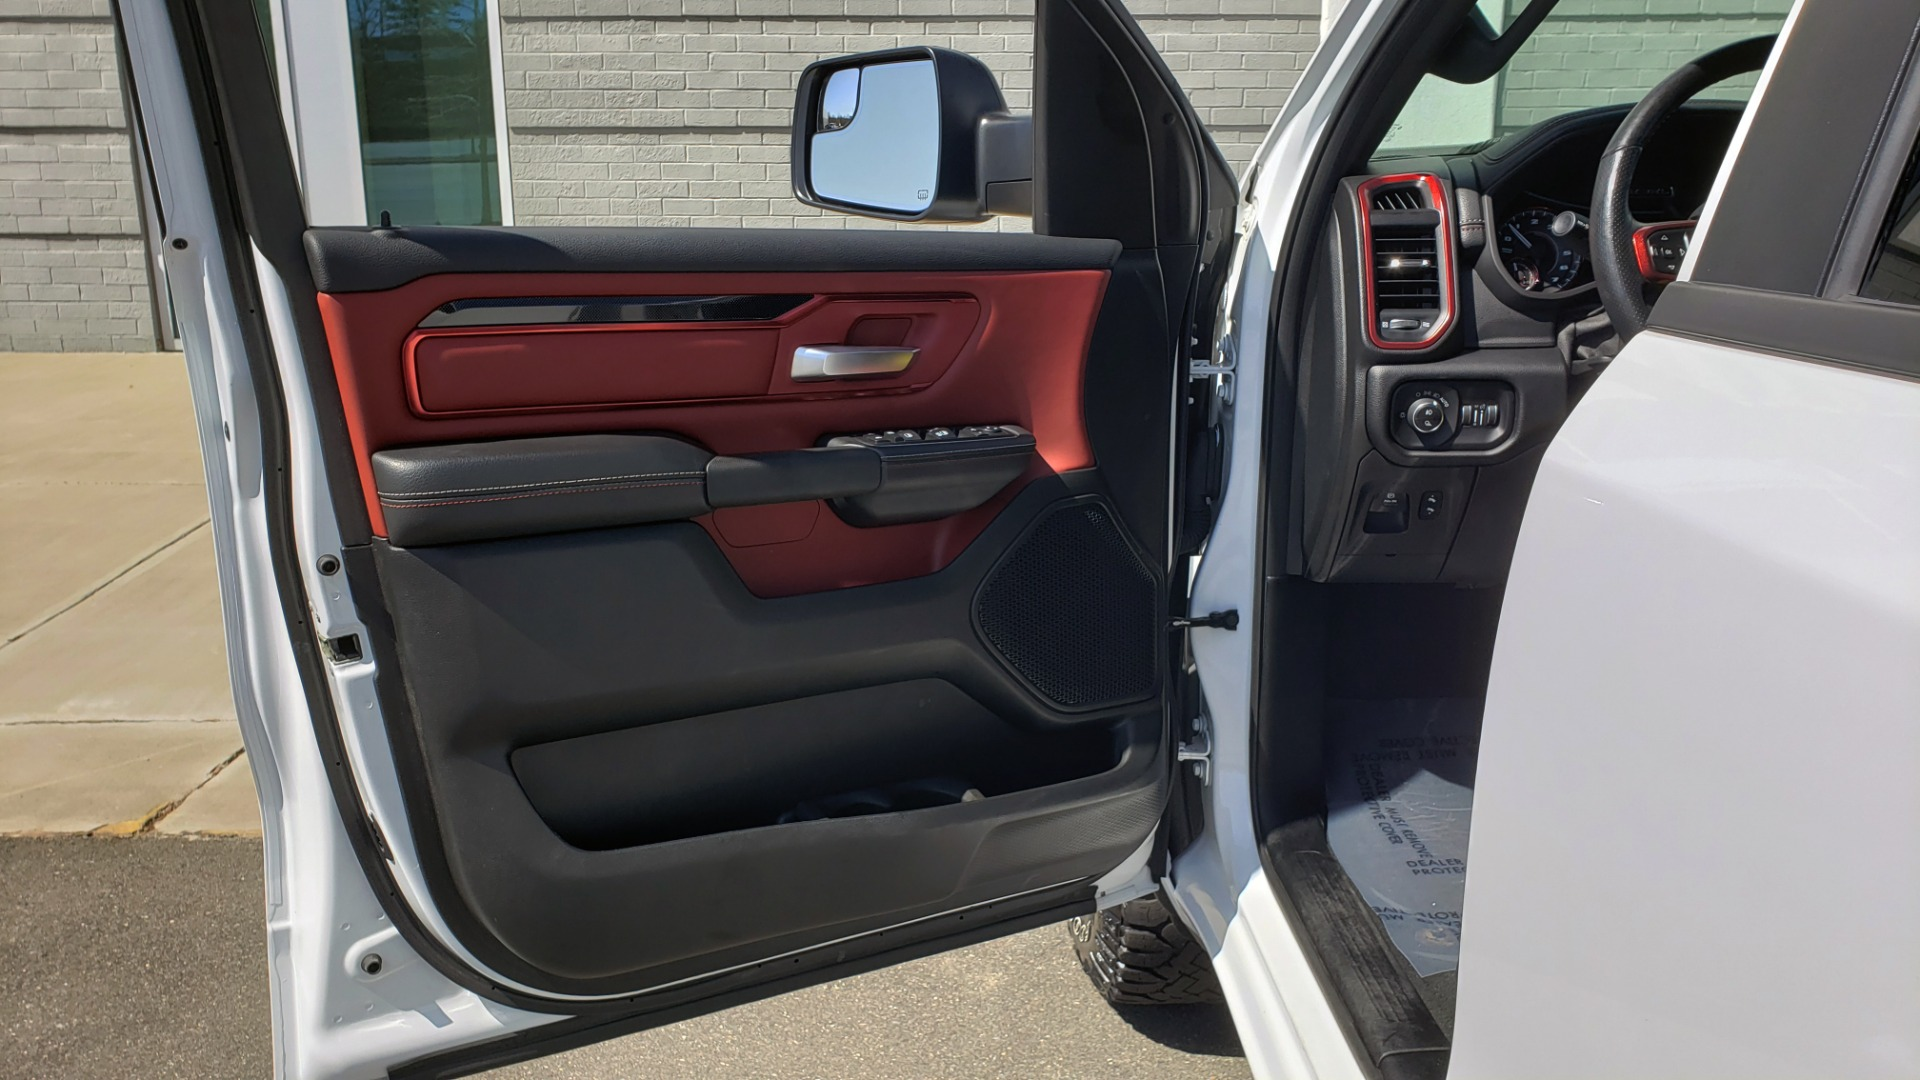 Used 2019 Ram 1500 REBEL CREWCAB 4X4 / 5.7L V8 HEMI / 8-SPD AUTO / REARVIEW for sale Sold at Formula Imports in Charlotte NC 28227 32